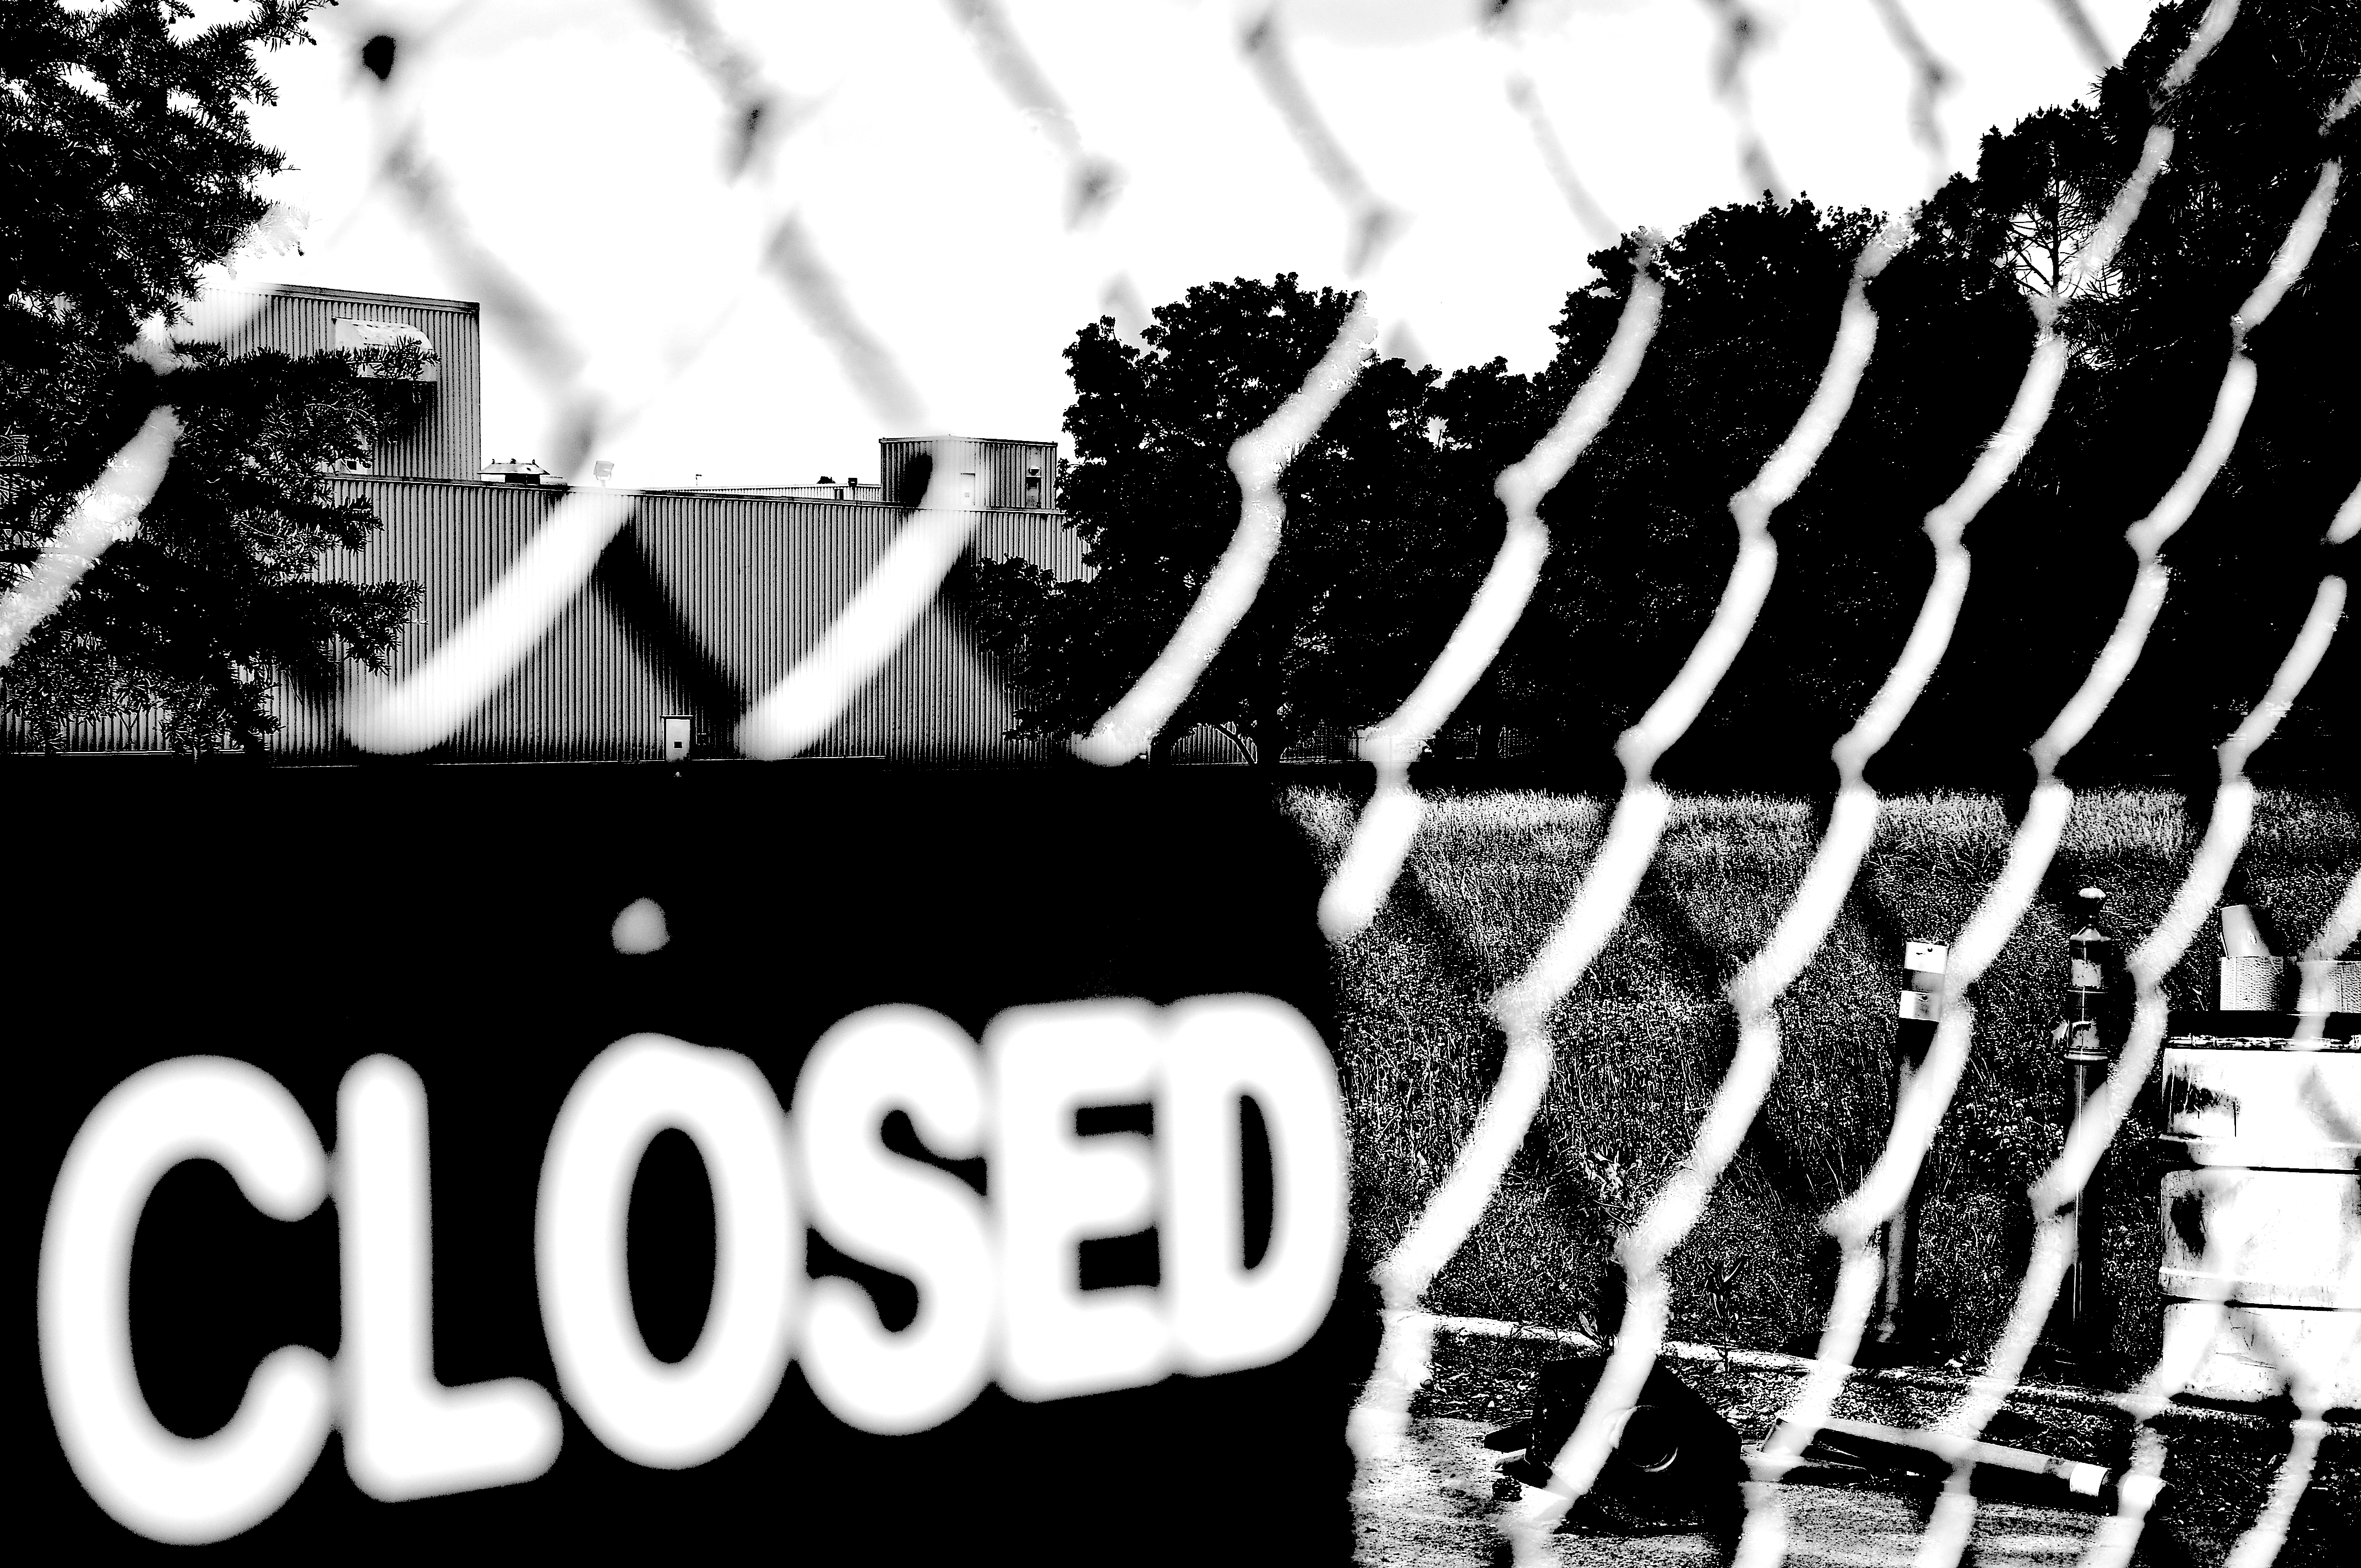 American Industry... closed. - M1510 h712